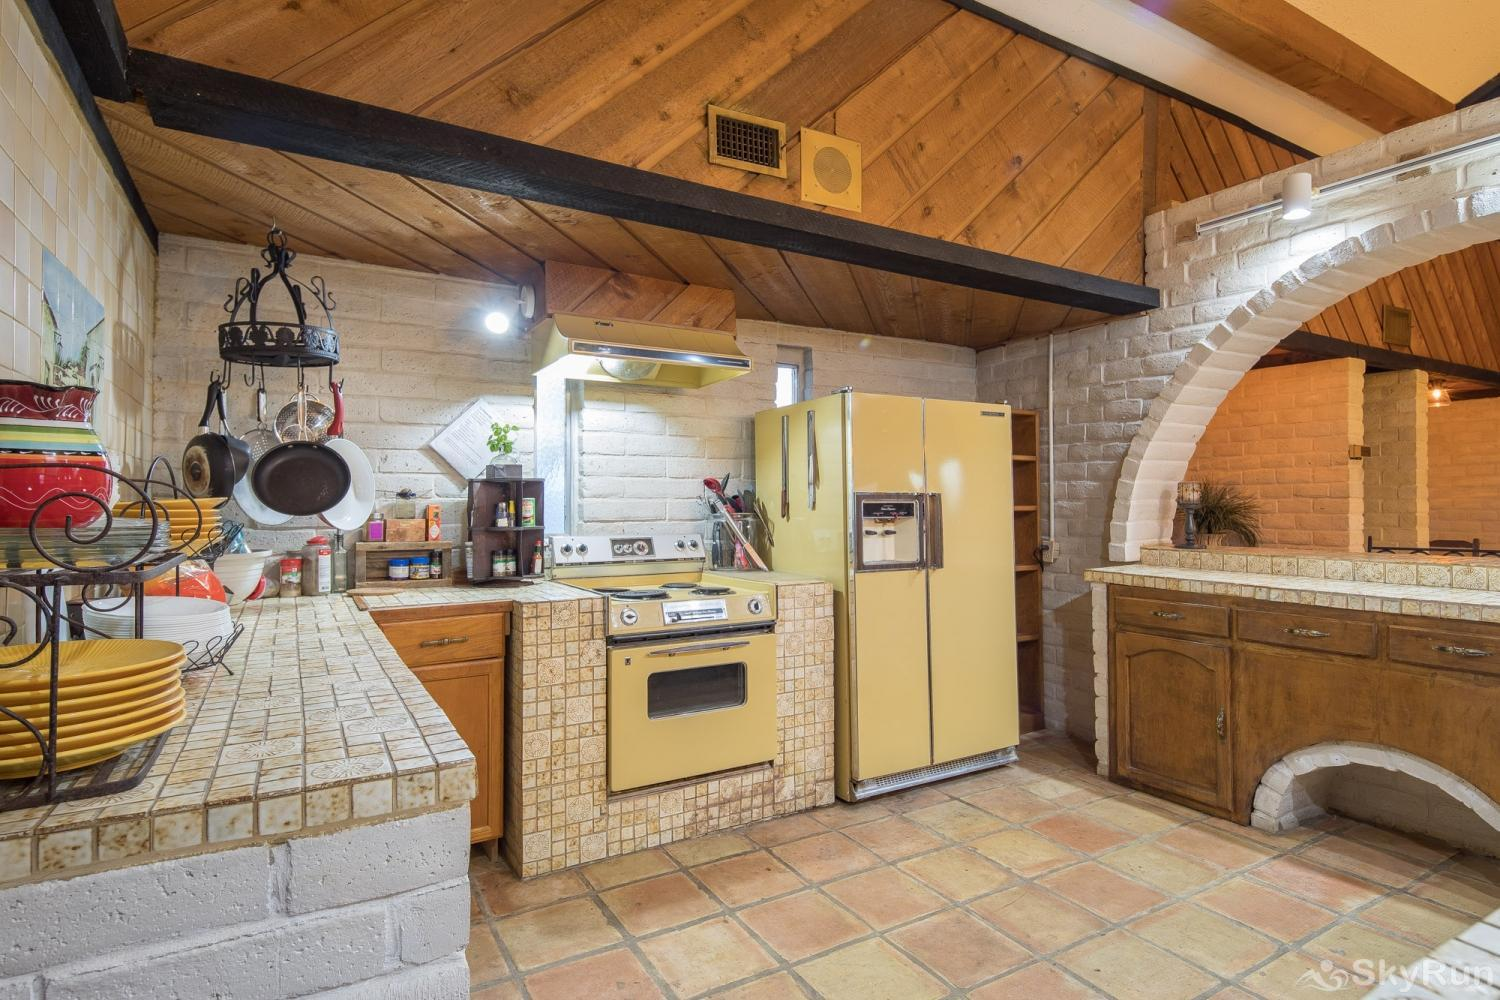 HACIENDA LAKE LODGE Kitchen equipped with all cooking and dining essentials